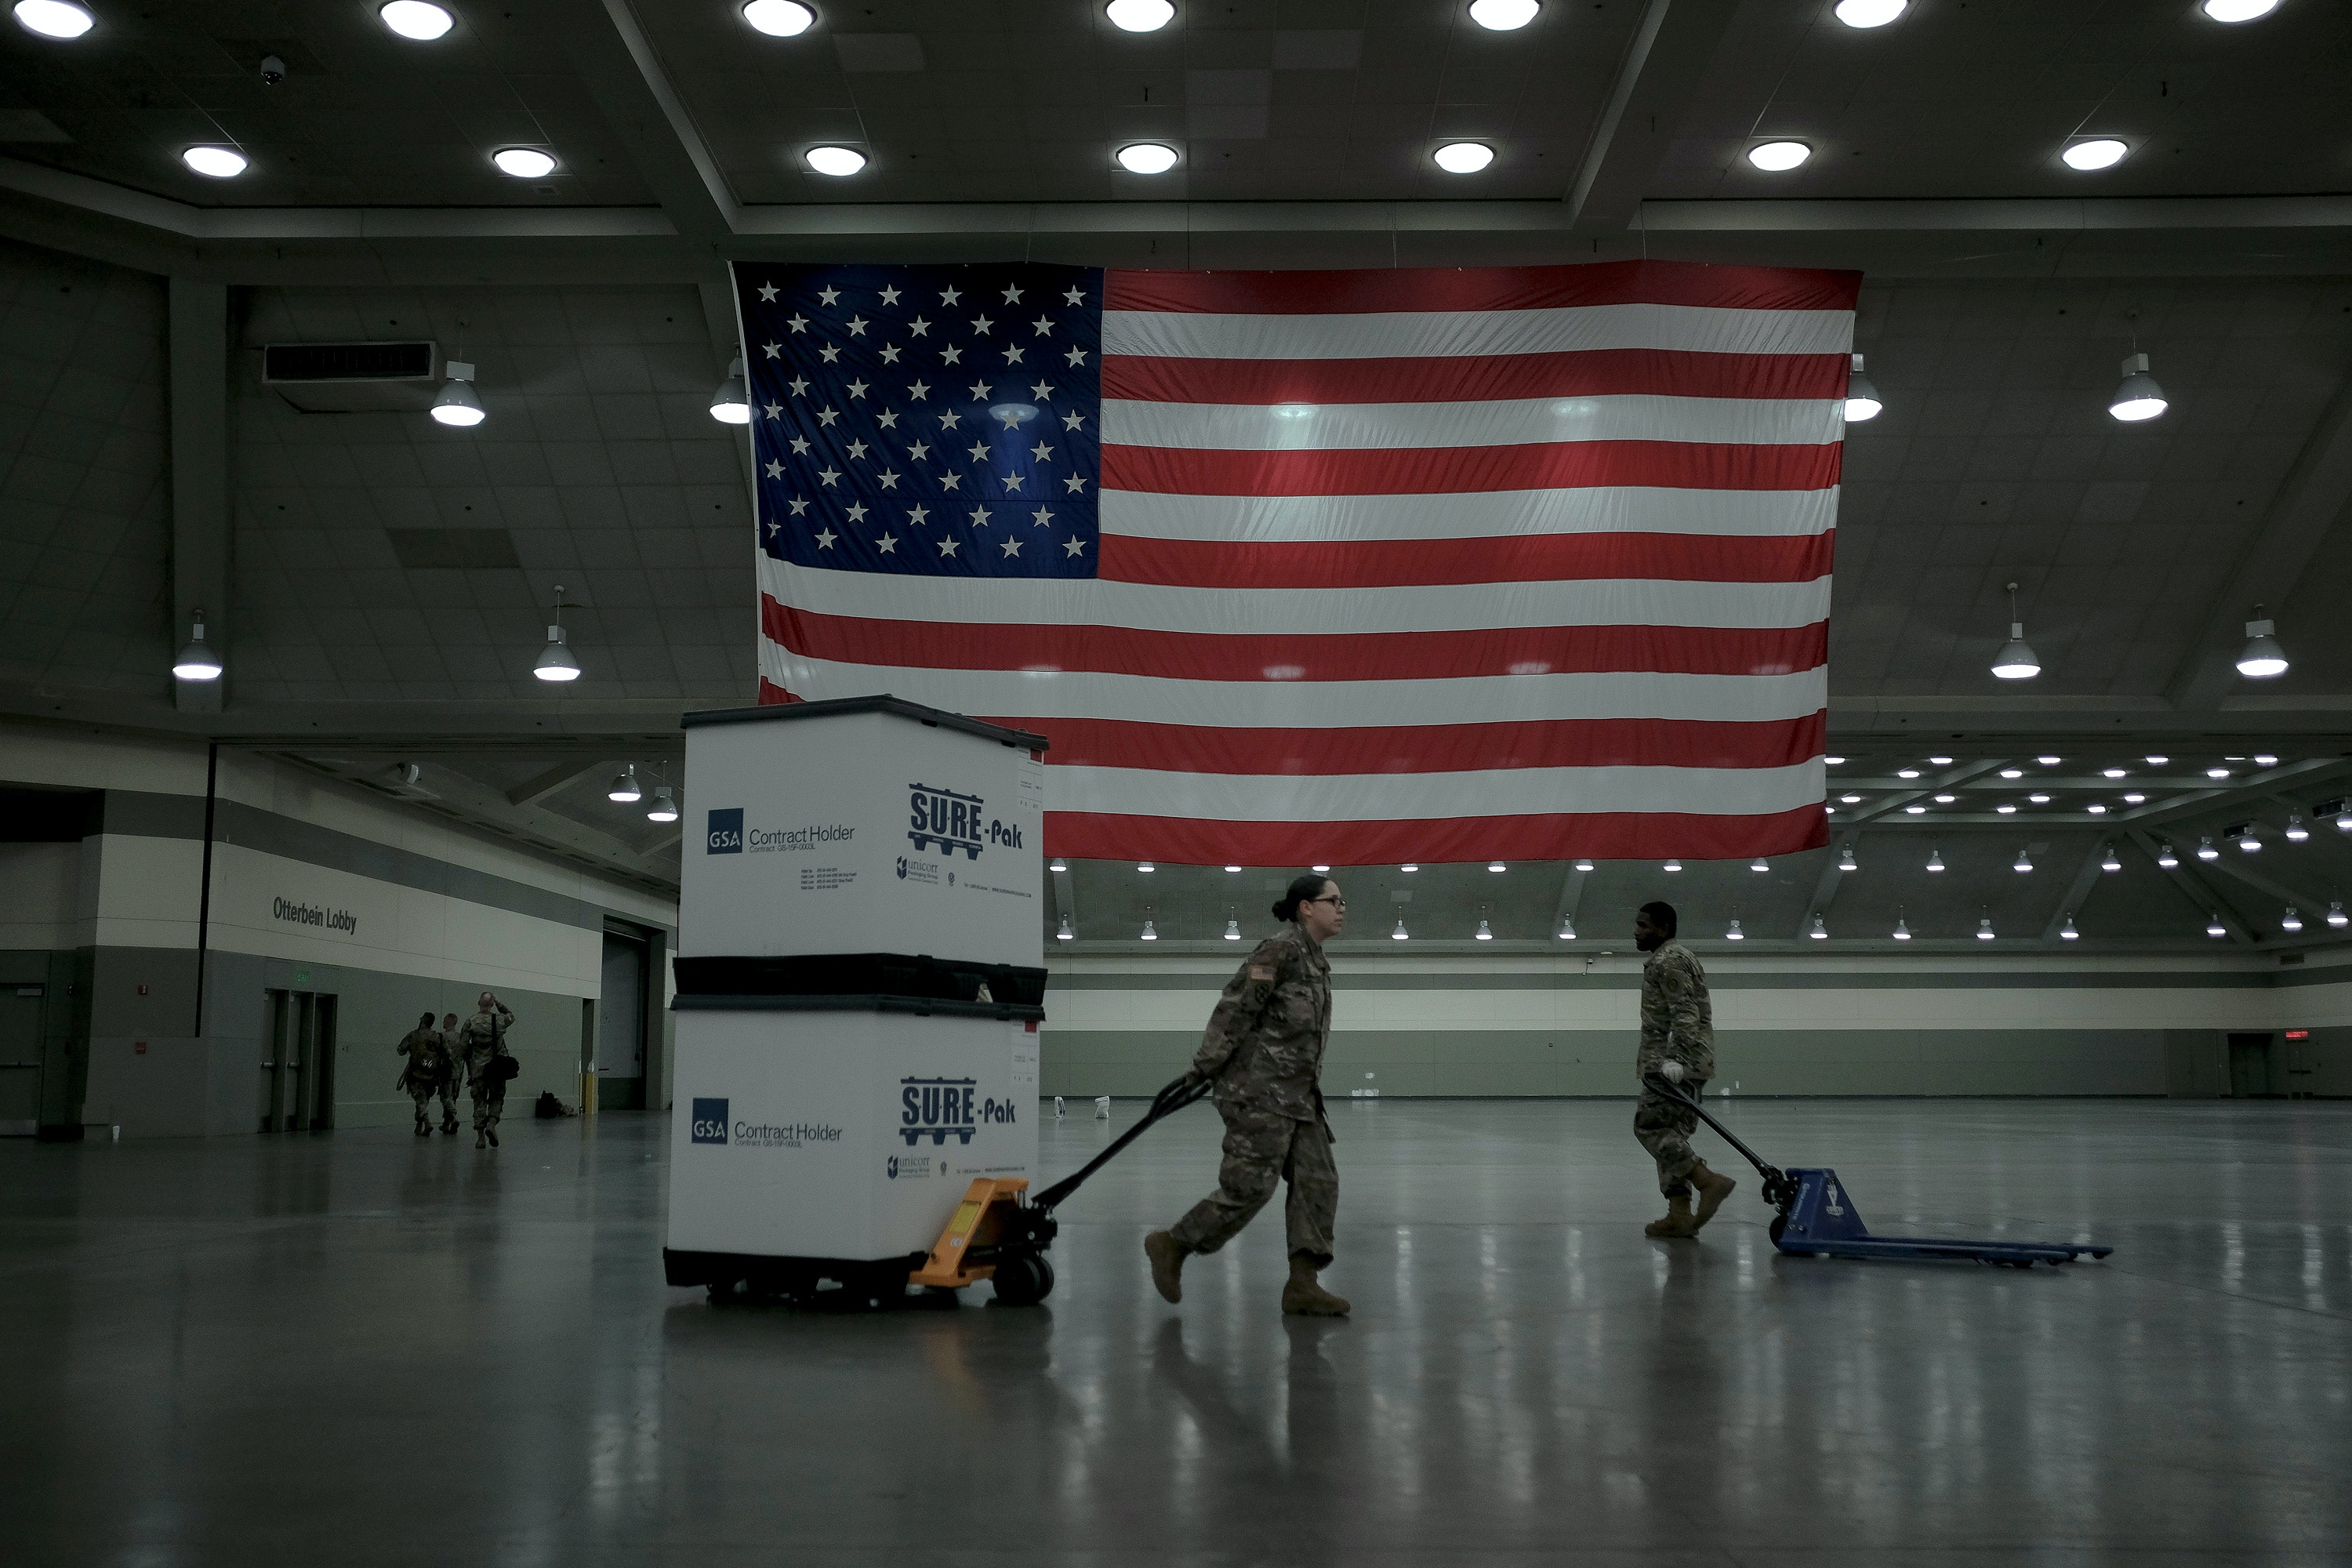 Members of the Maryland National Guard unload crates of beds from FEMA into the convention center in Baltimore, Md., on March 28, 2020. The Guard set up a 250-bed field hospital in preparation for Covid-19 patients.